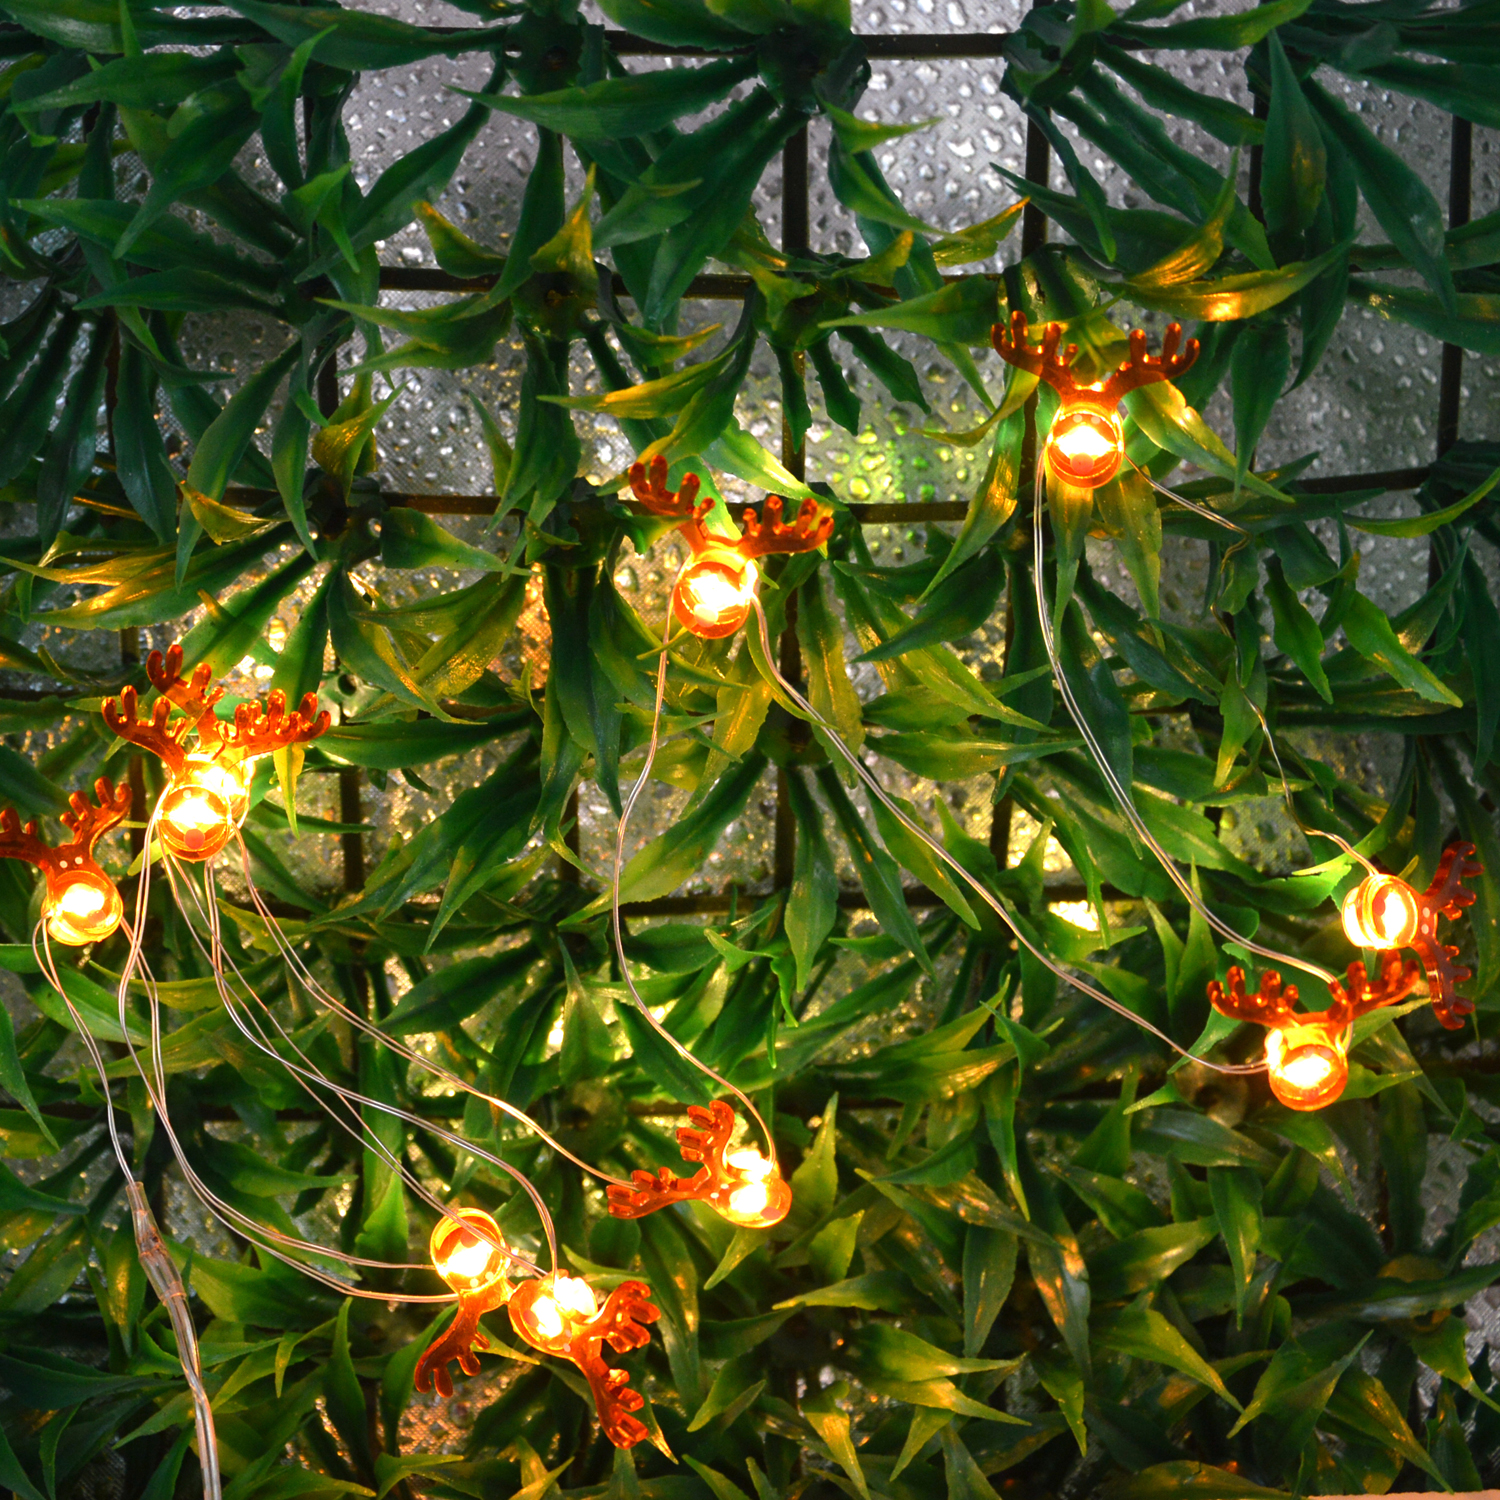 Garland Led String Light 1M  2M  Deer Lantern Fairy Strip Lights Decorations For Holidays, Festival And Christmas Decorations